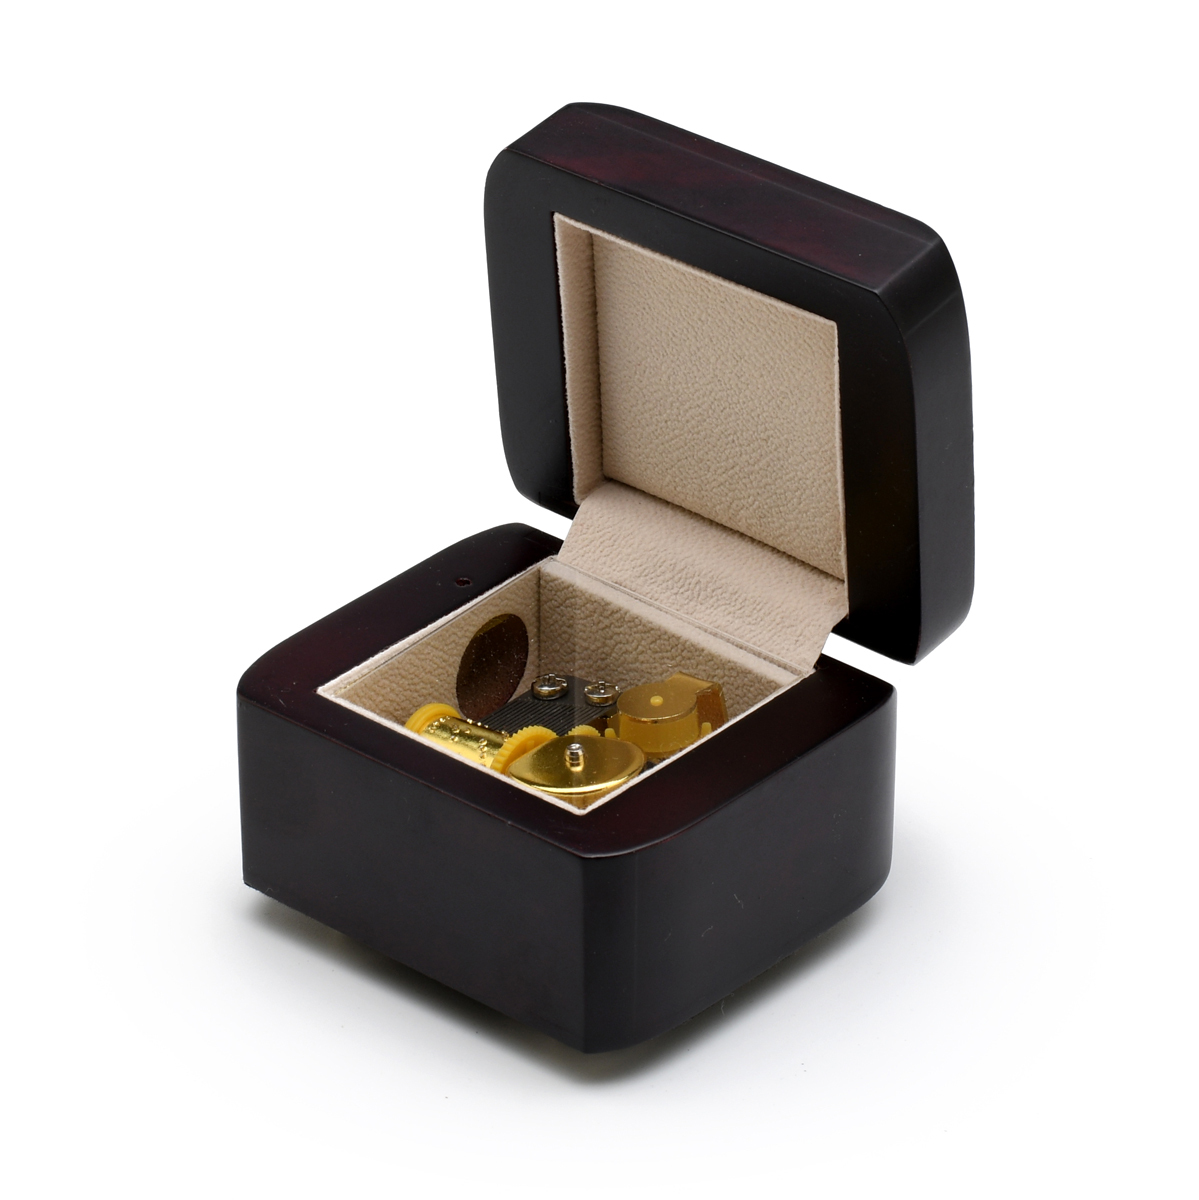 Charming 18 Note Musical Box with Matte Dark Wood Tone Finish